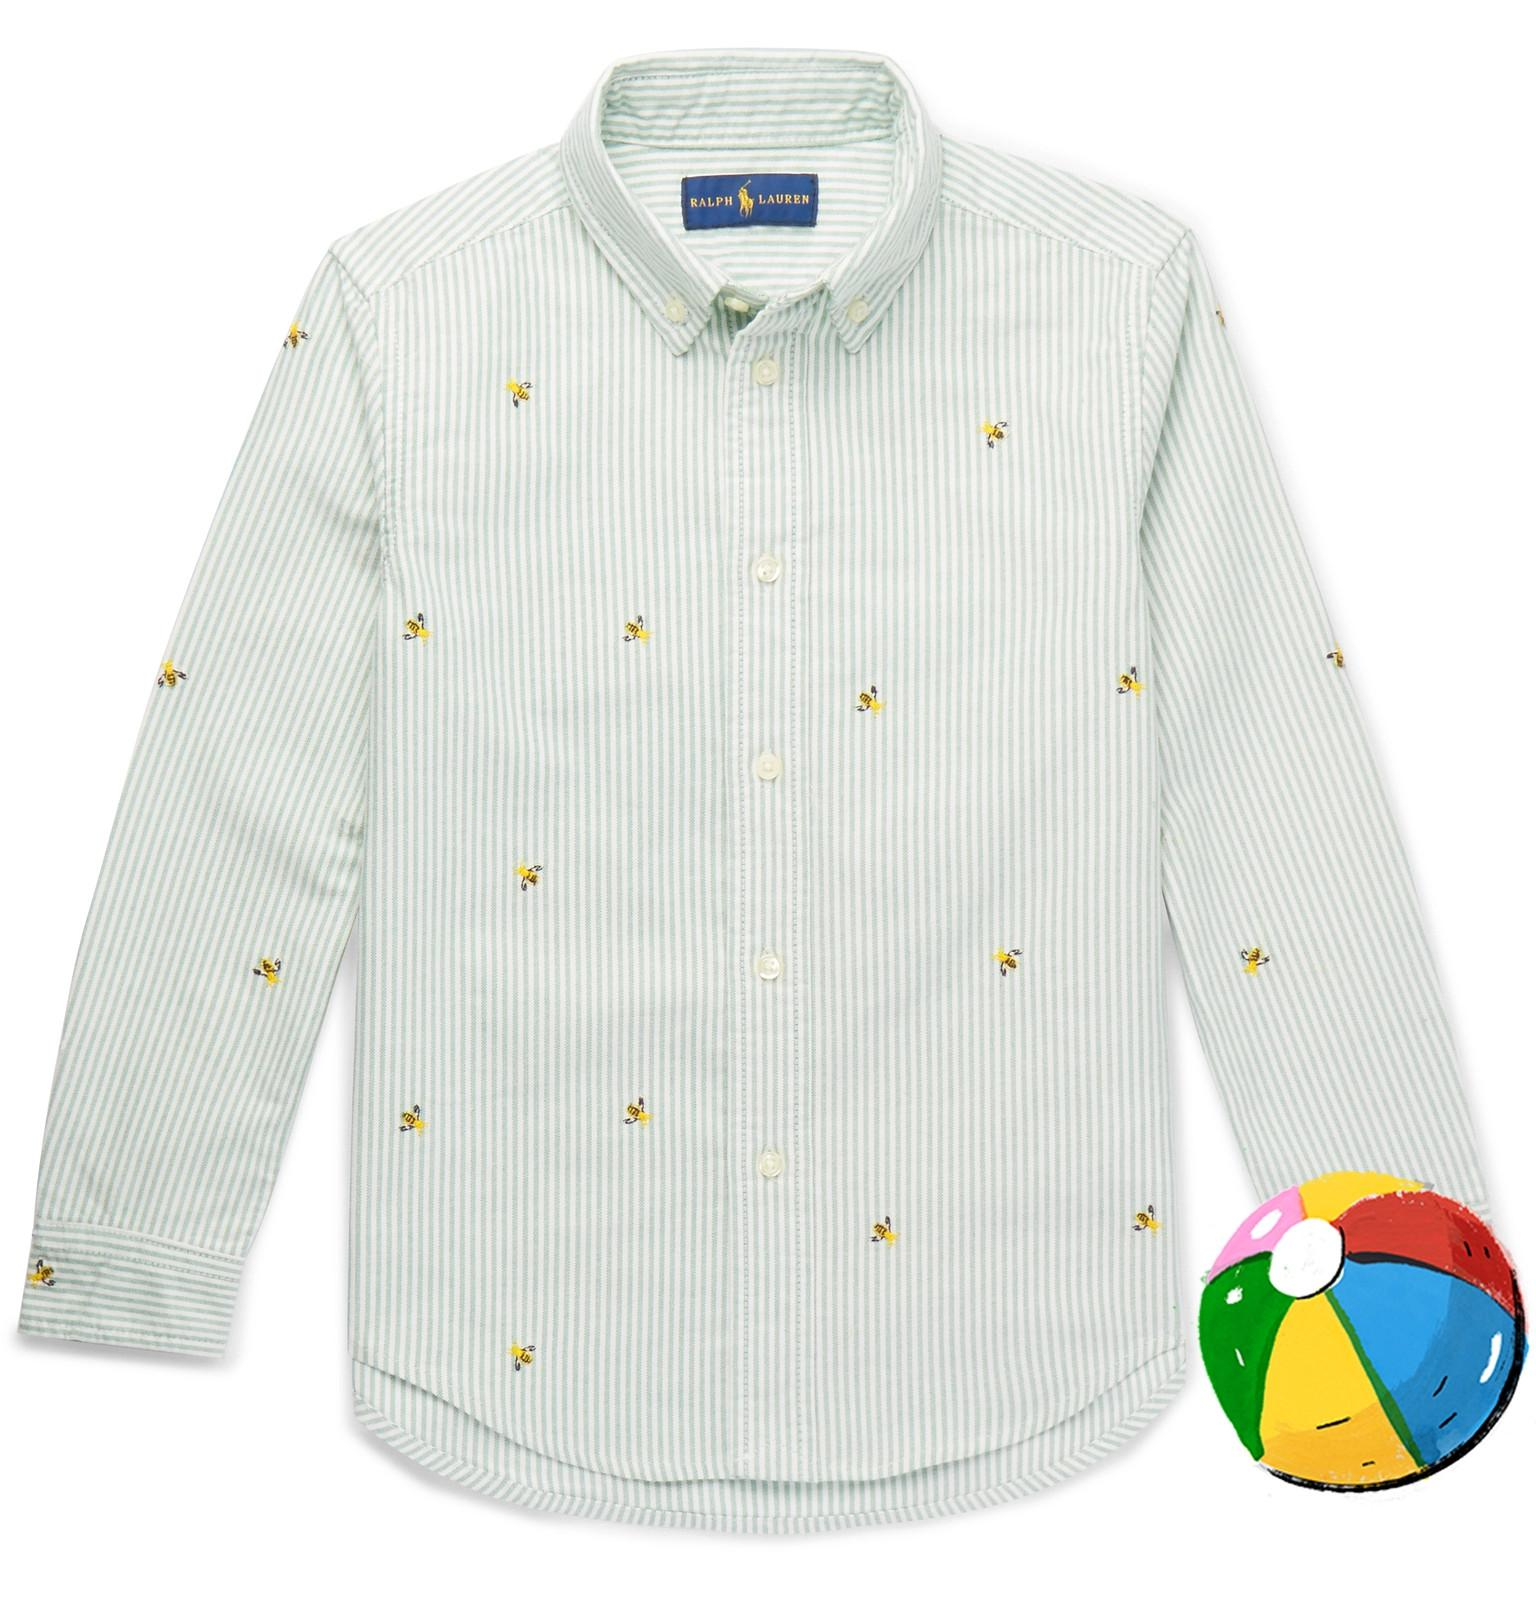 Ralph Lauren Boys Ages 8 - 10 Embroidered Linen And Cotton-blend Chambray Shirt - Blue g7gIGLUJE